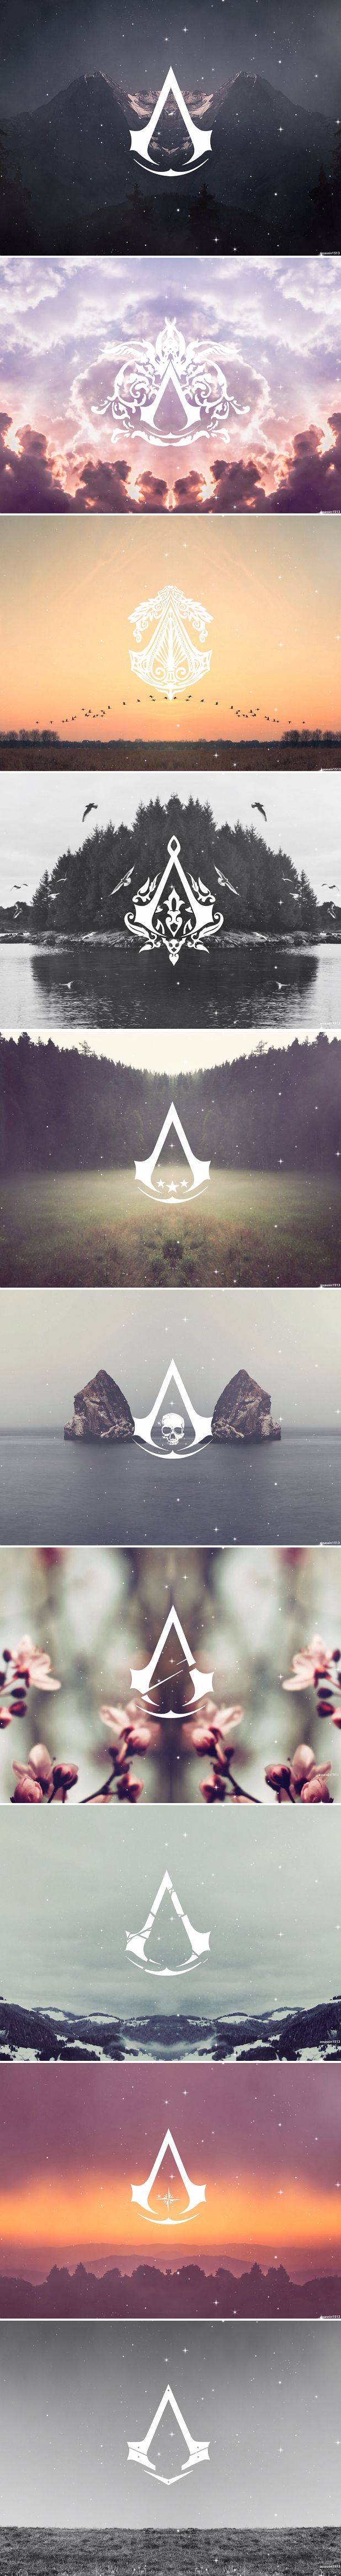 Assassin's Creed Logos